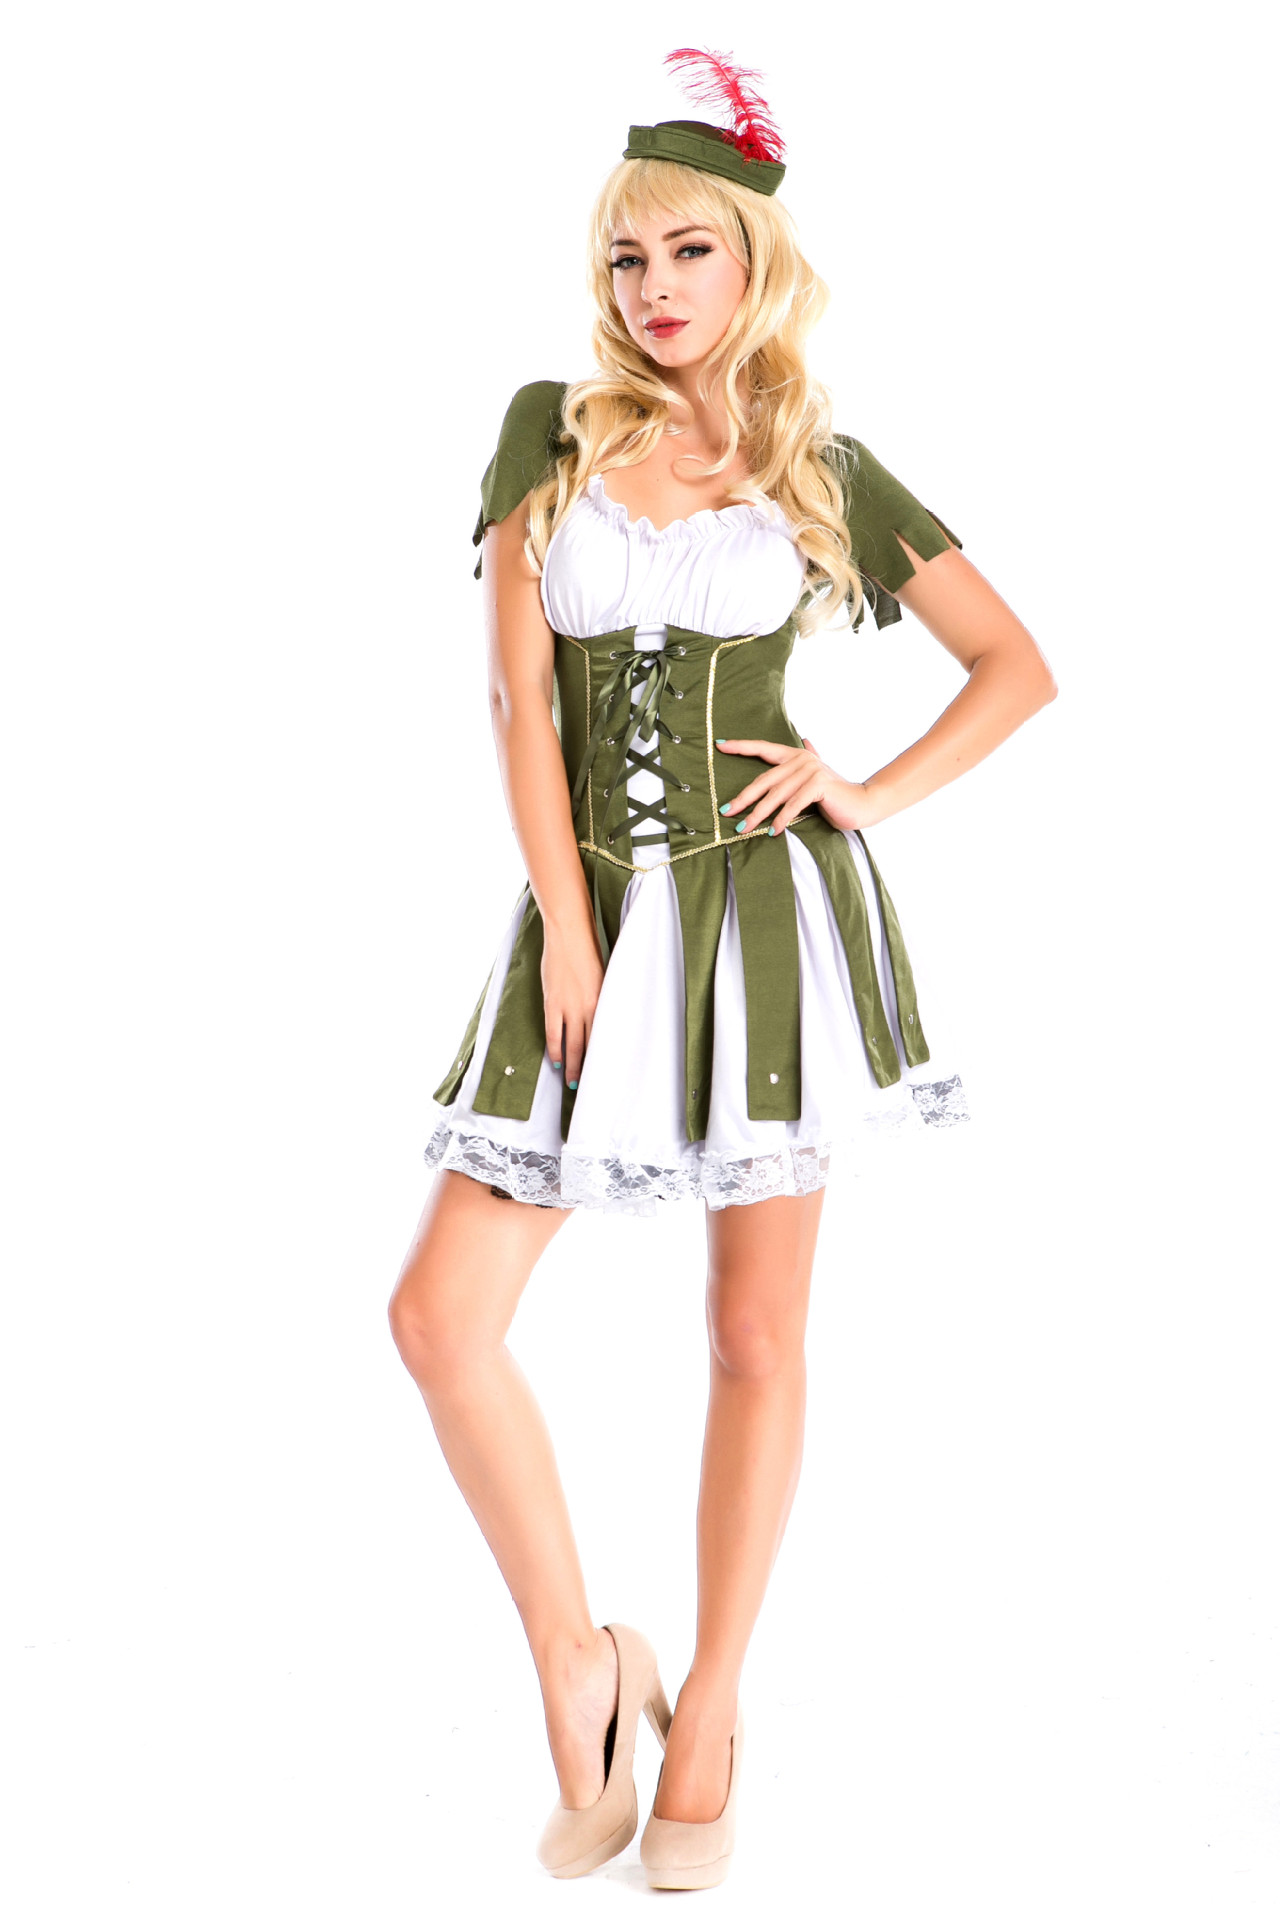 high quality new halloween costumes female pirate green role play